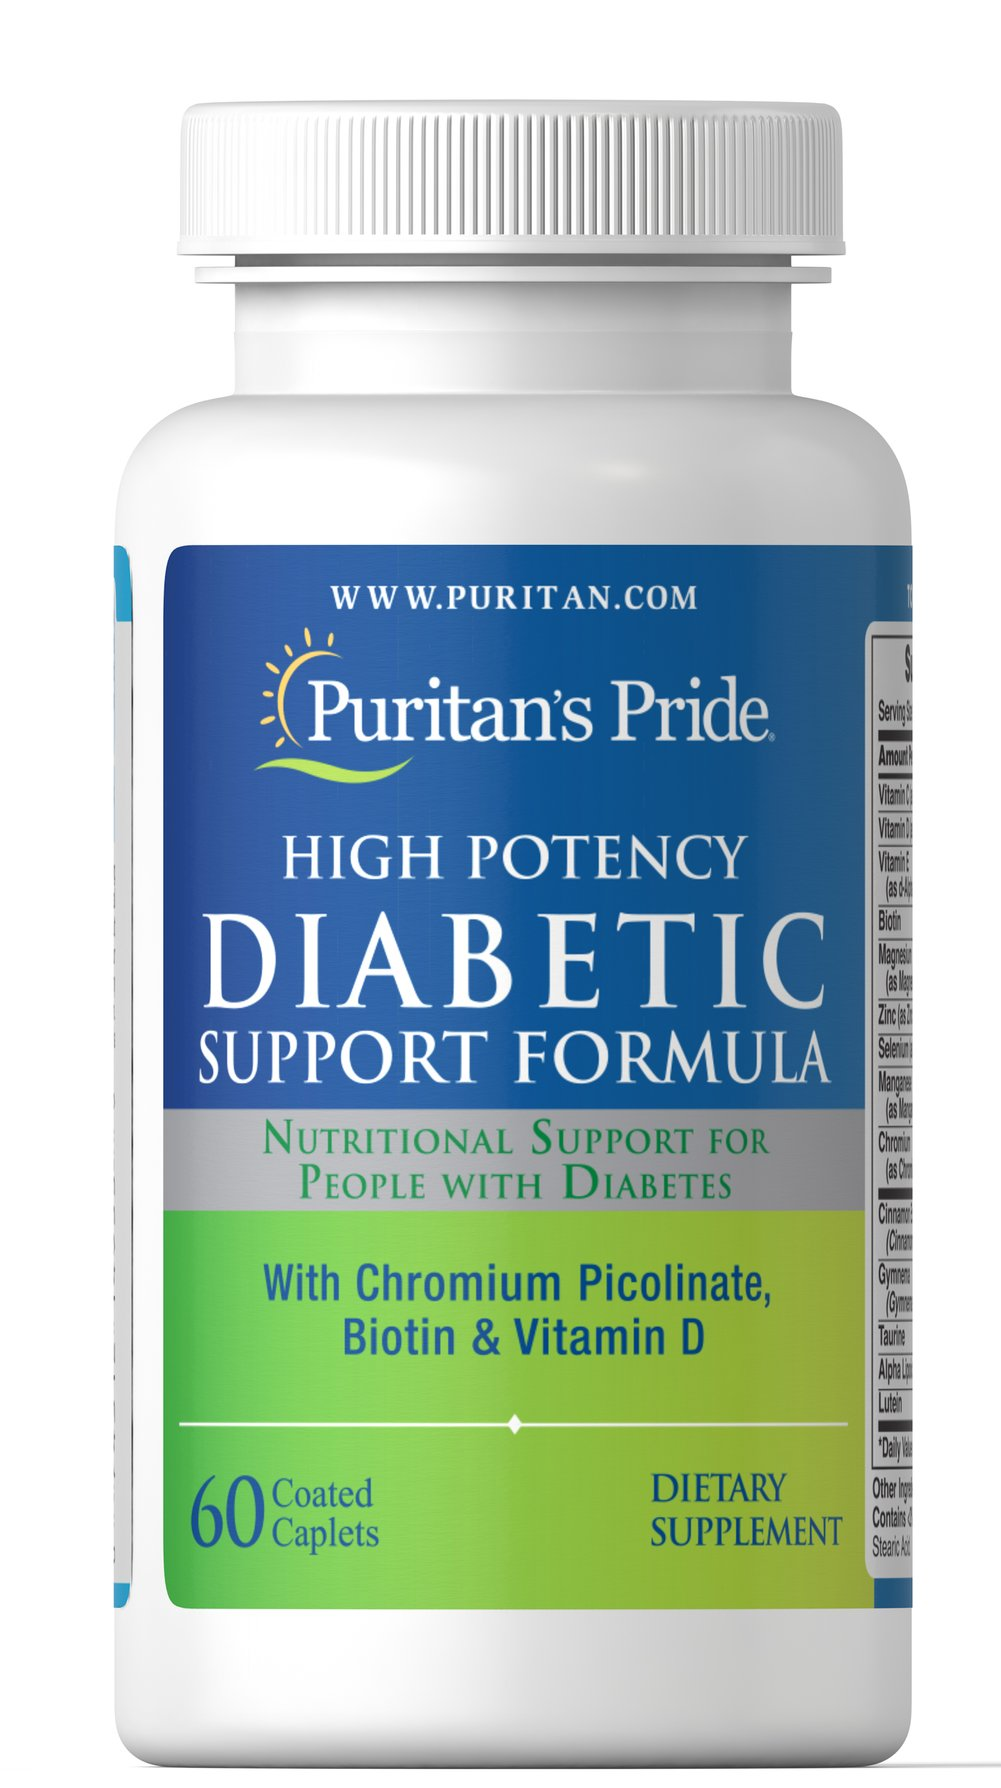 Diabetic Support Formula <p>These high-potency tablets contain a synergistic blend of Chromium Picolinate, Lipoic Acid, Ginkgo Biloba and other nutrients. Diabetics/Hypoglycemics: Use only under a doctor's supervision because this product contains Chromium which may enhance insulin sensitivity and may affect your blood glucose levels.</p> 60 Caplets  $29.99